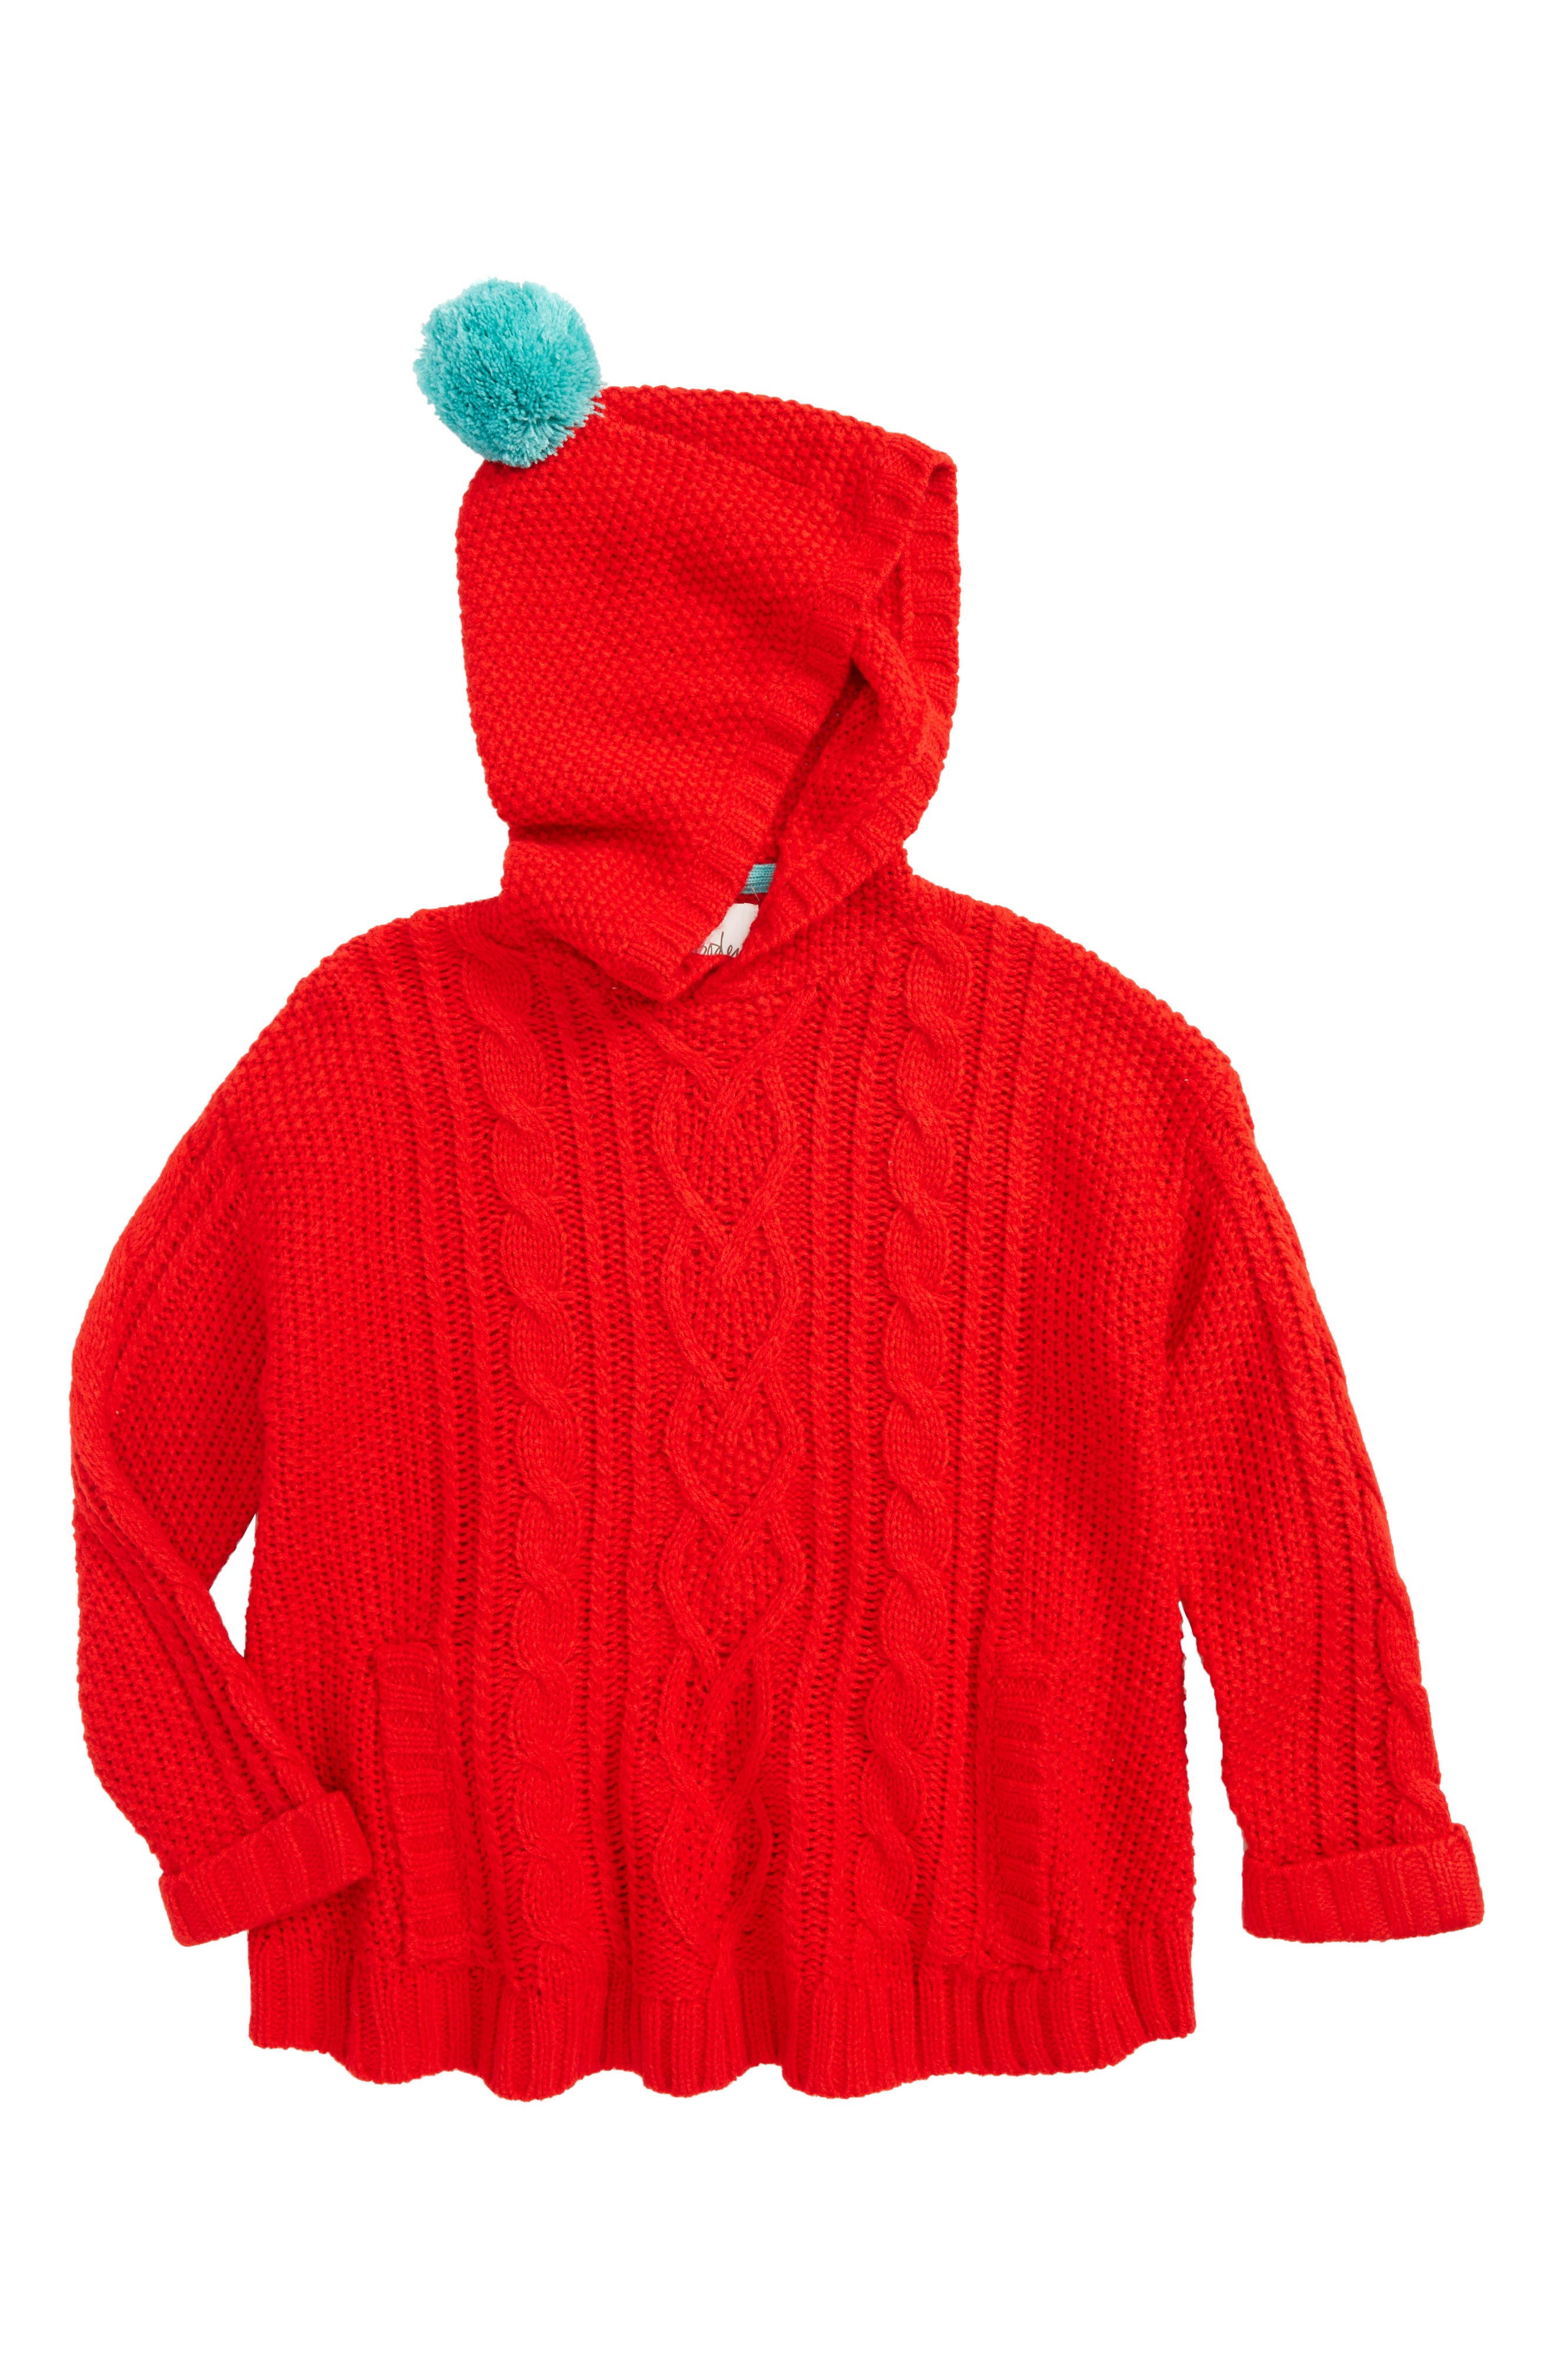 Cable Knit Hooded Sweater,                         Main,                         color, Ladybird Red Red